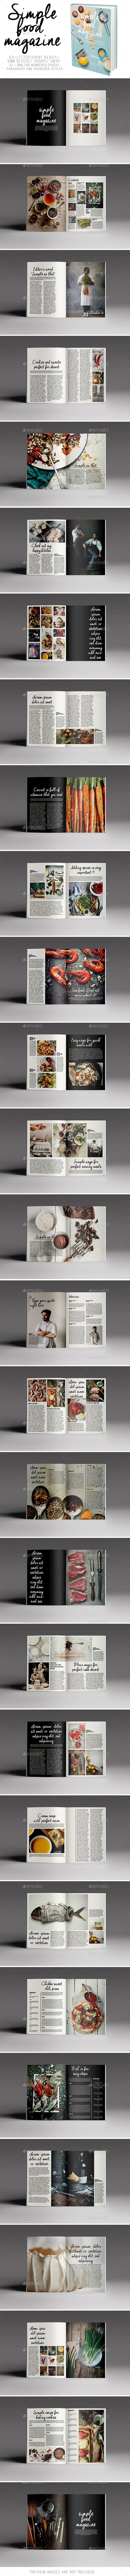 Simple Food Magazine - Magazines Print Templates